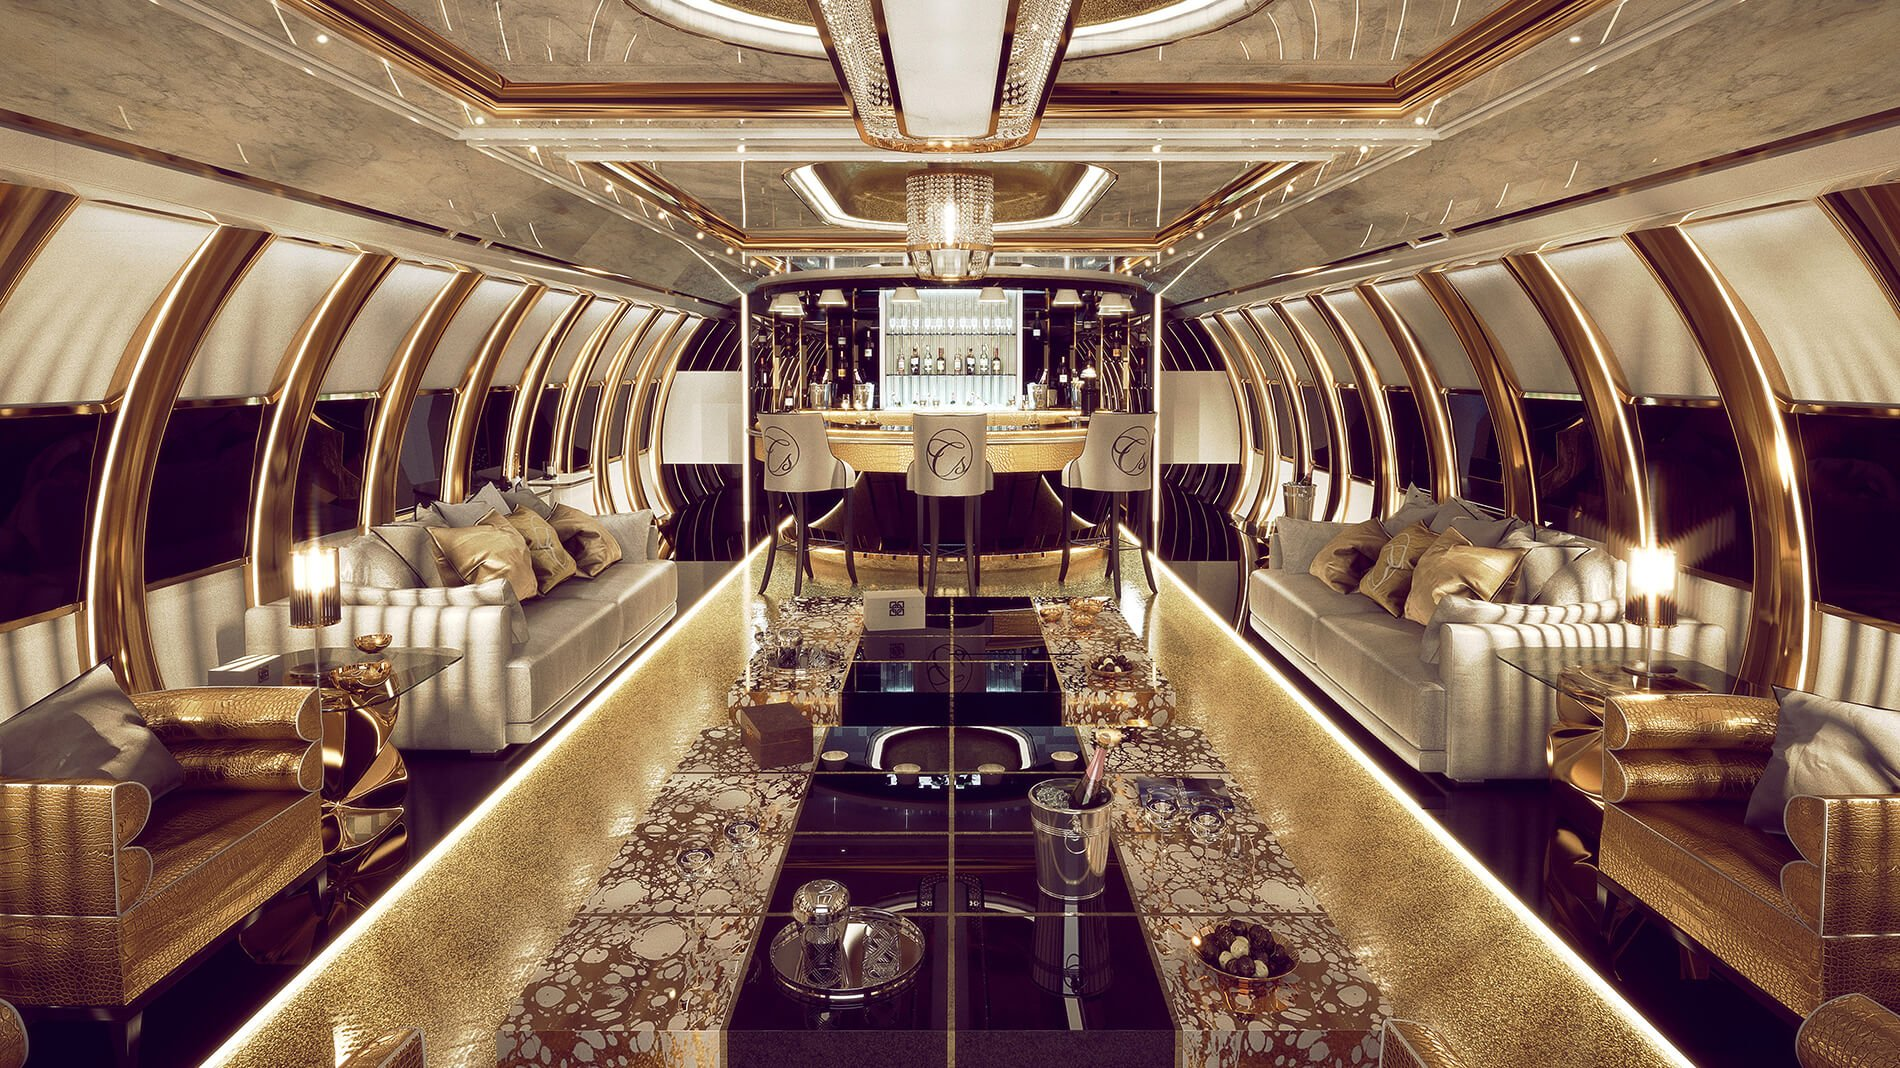 This private Airbus A340 designed for a Middle Eastern Royal is fitted with gold plated chandeliers, Swarovski wash basin and an illuminated bar